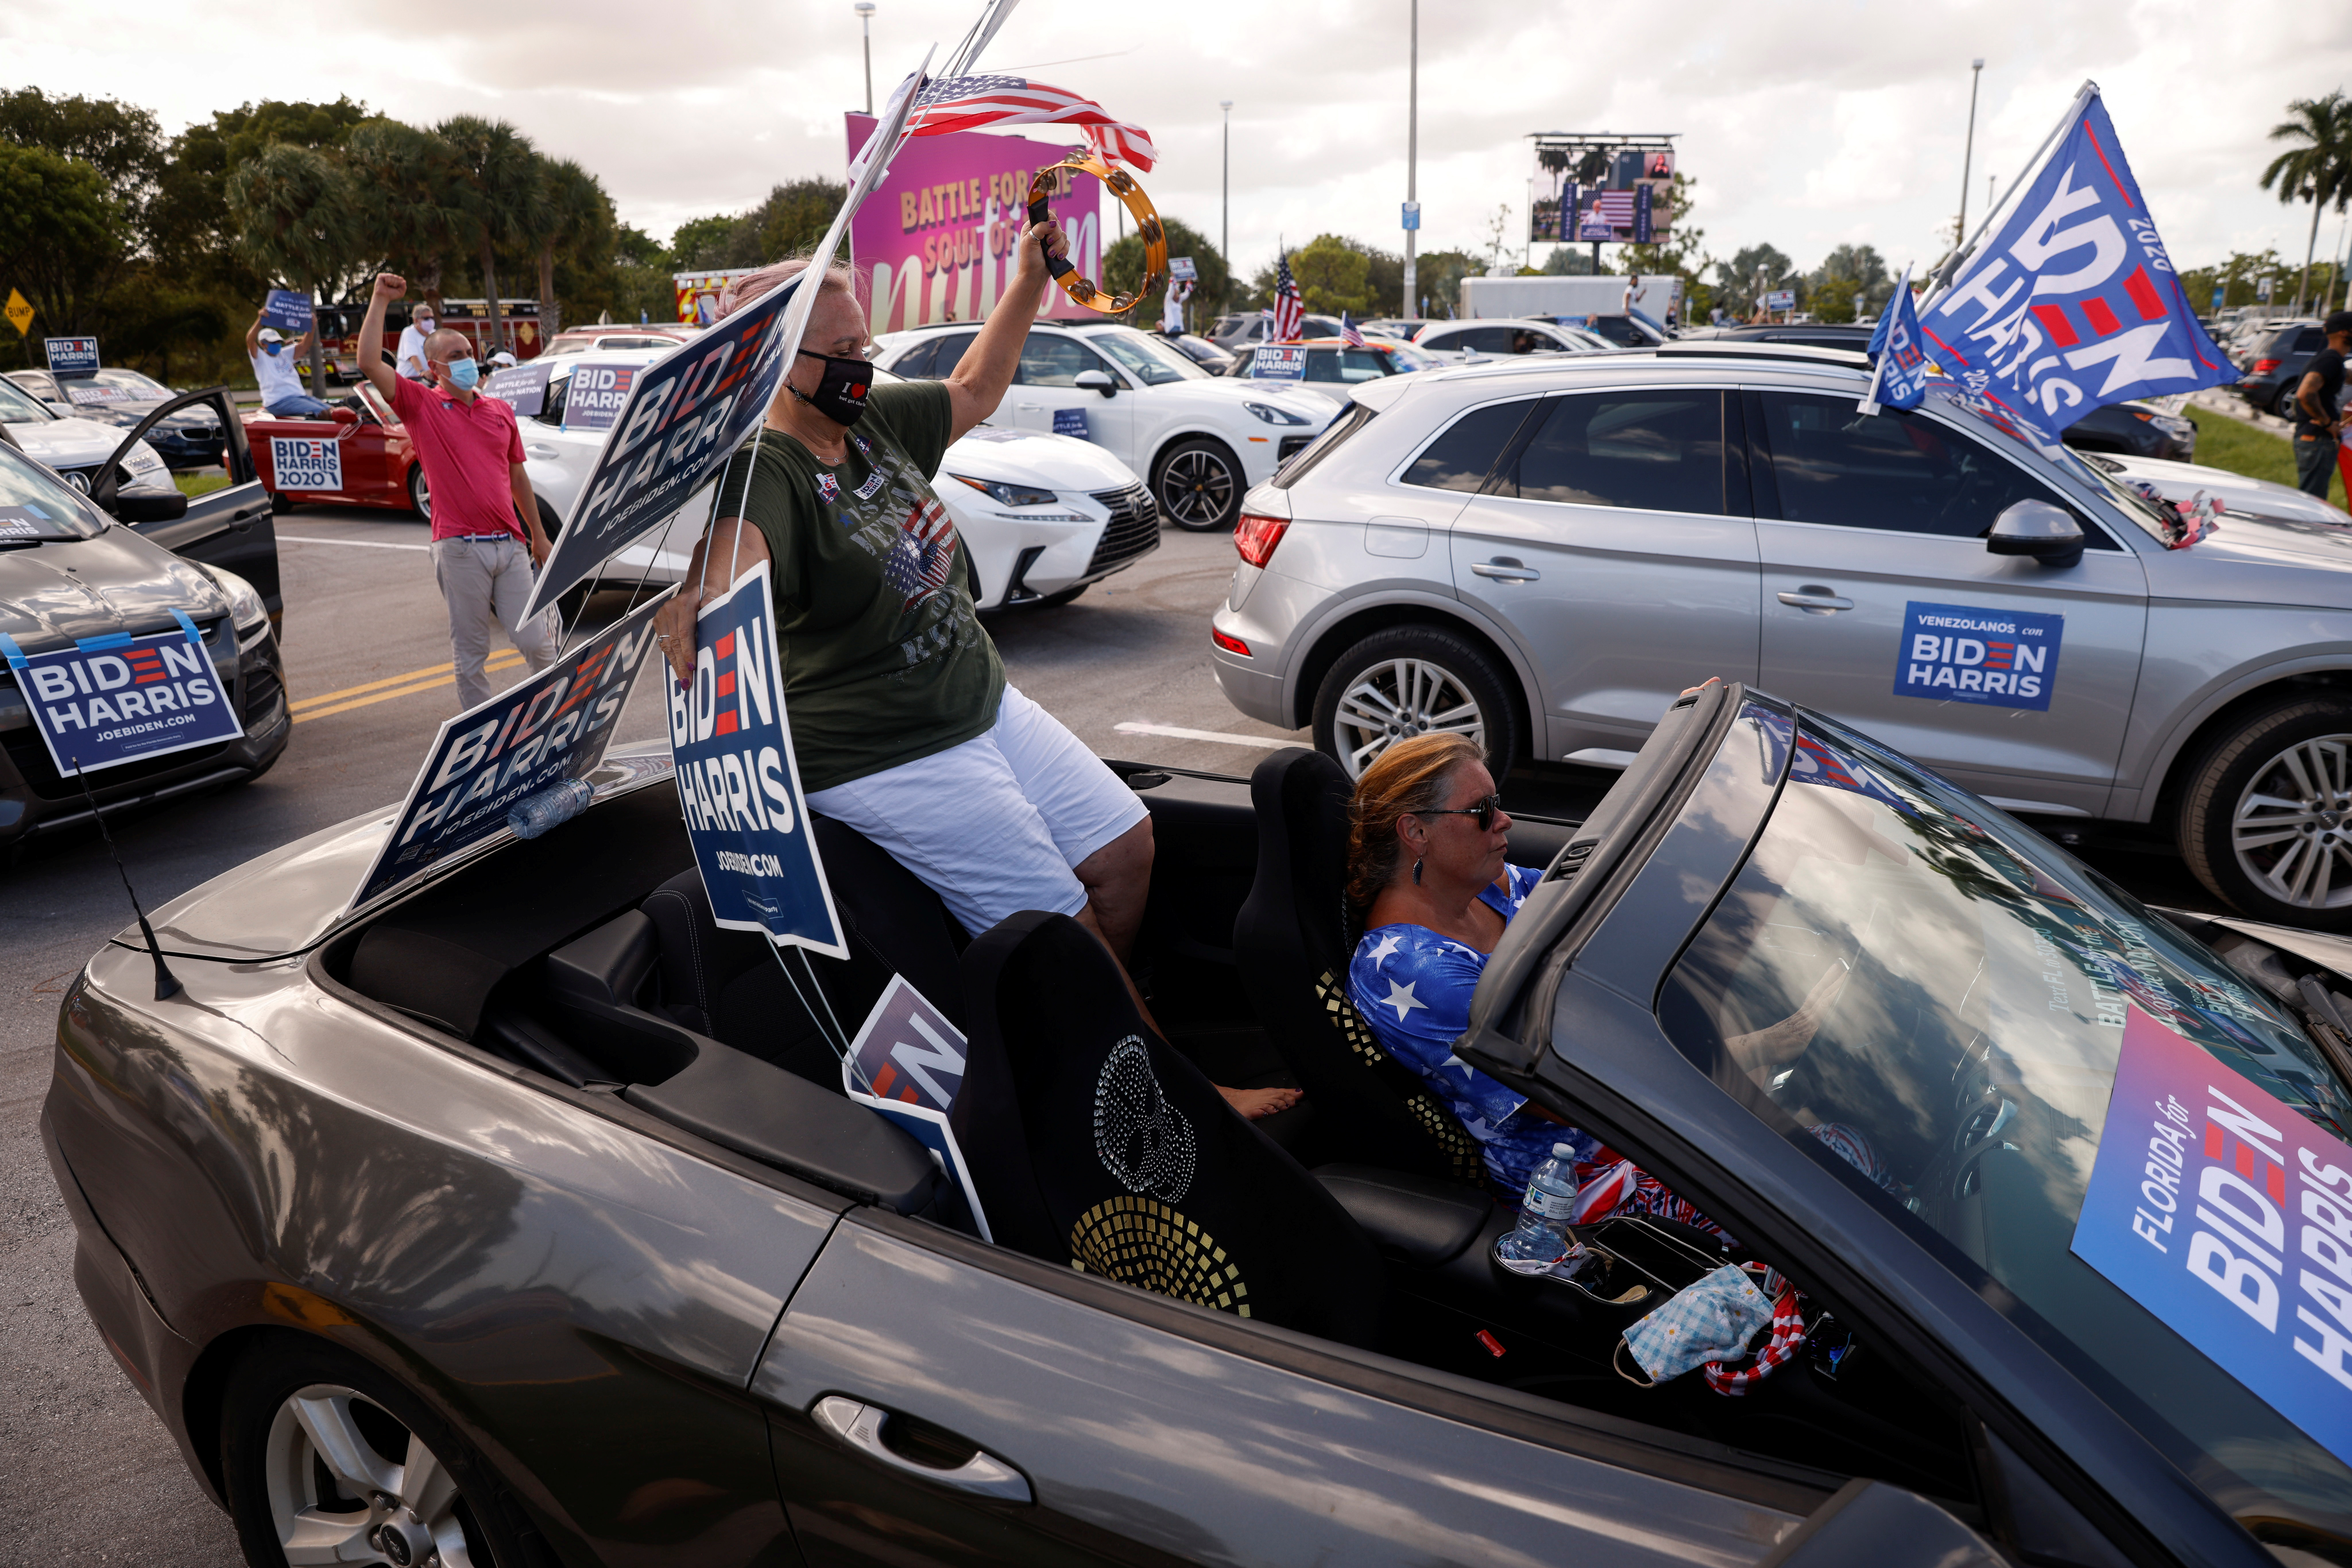 Supporters of the democratic U.S. presidential nominee and former Vice President Joe Biden are seen at a drive-in, at Get Out the Vote campaign stop in Coconut Creek, Florida, U.S., October 29, 2020. (Brian Snyder/Reuters)